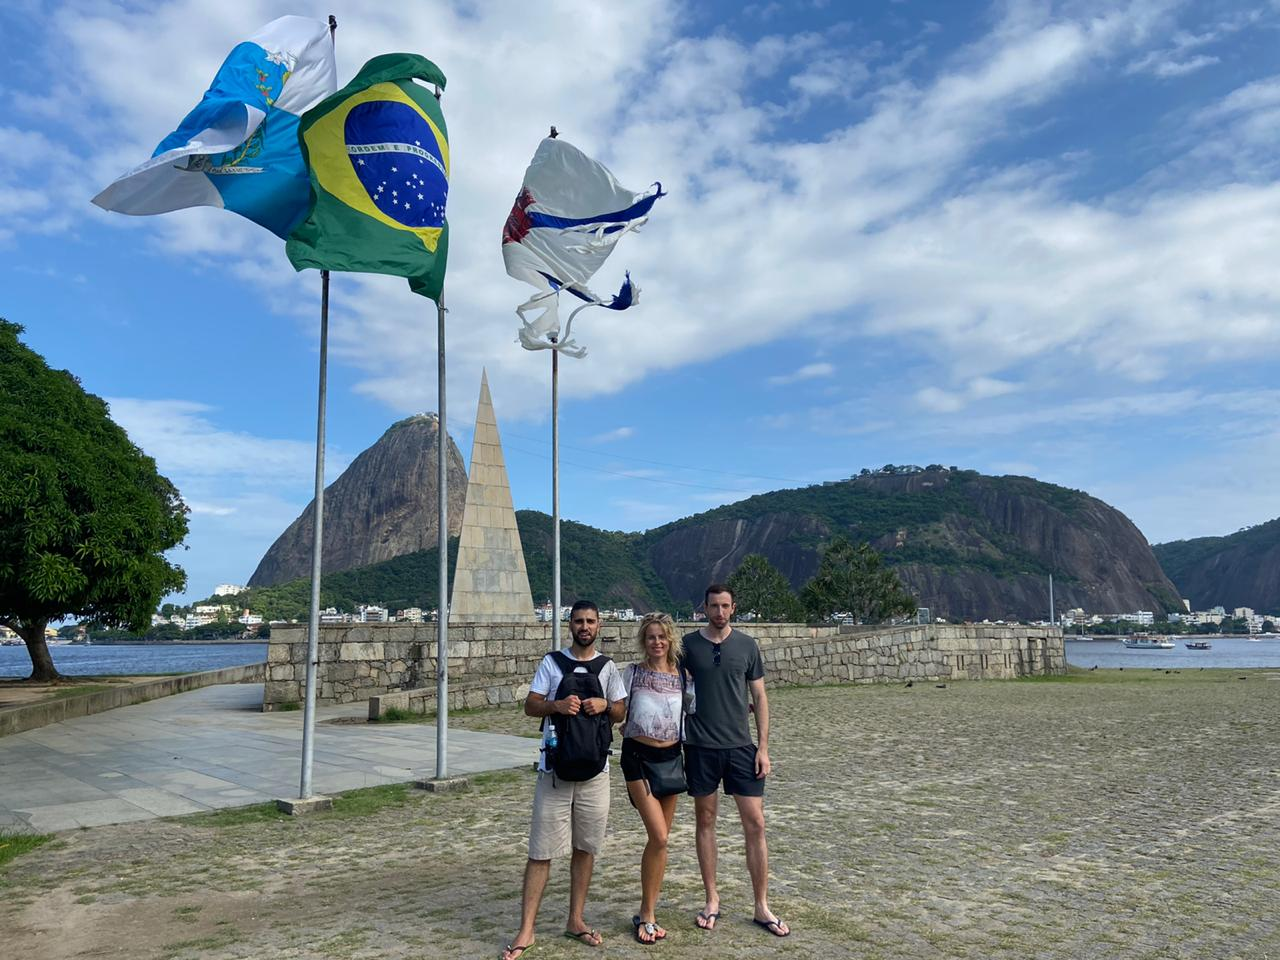 Students in front of the flags of Brazil and Rio de aneiro at Aterro do Flamengo